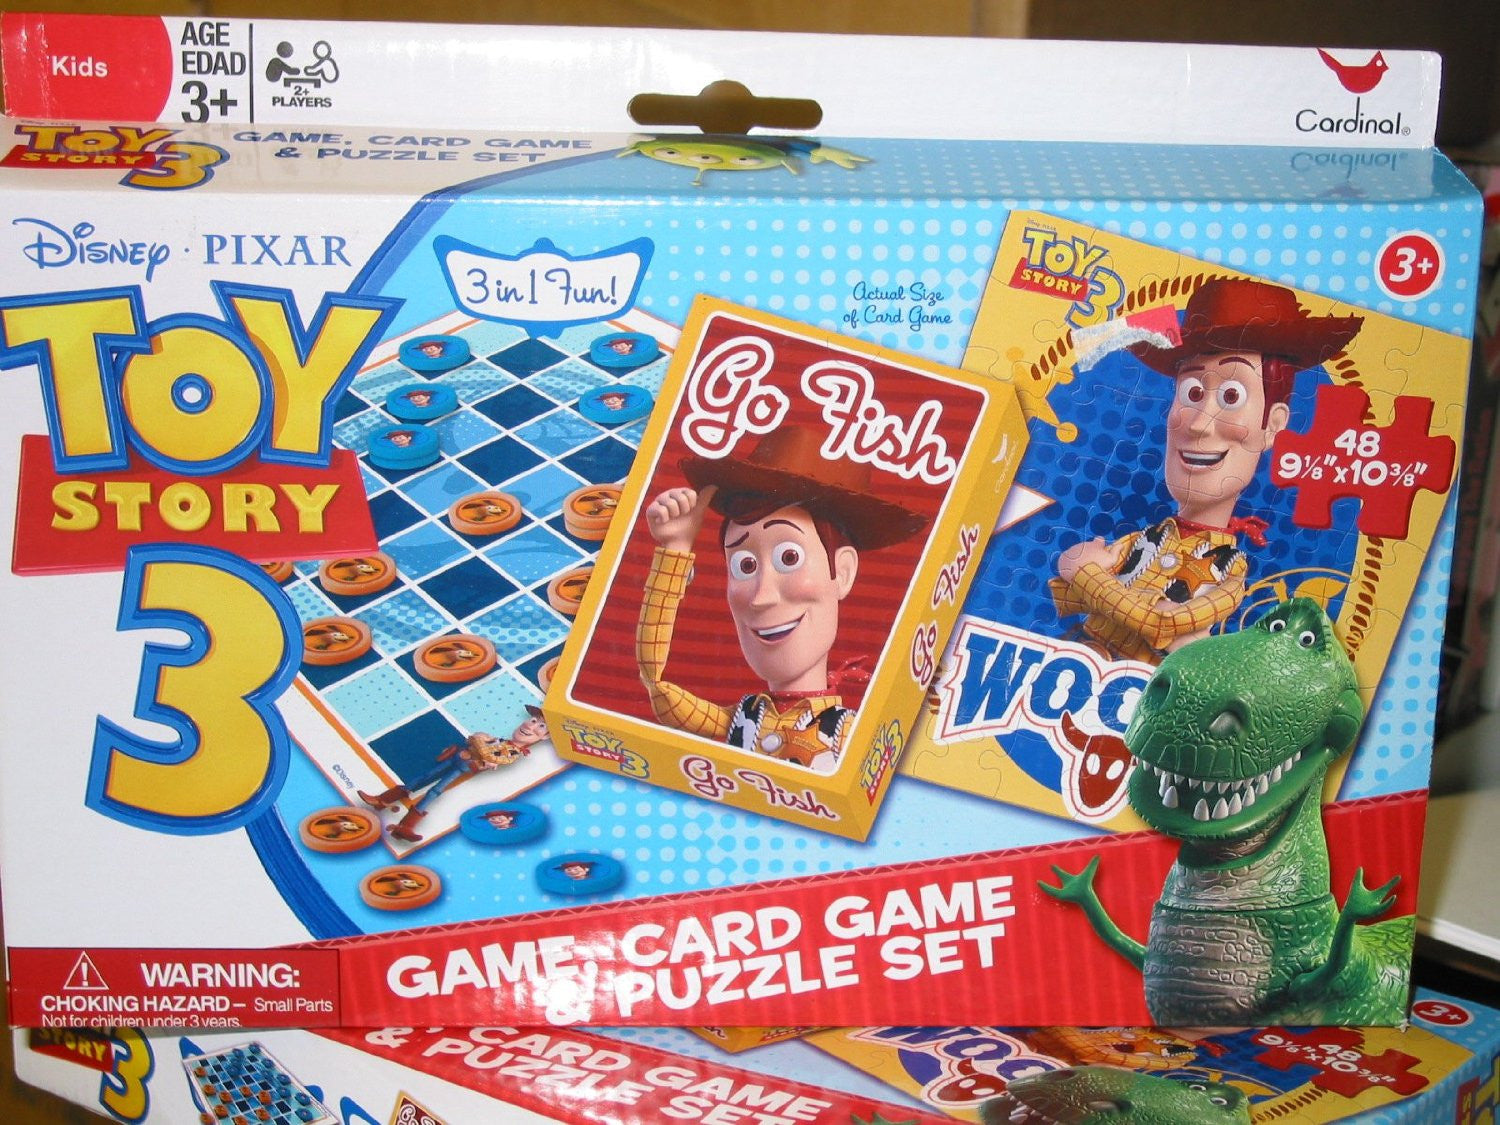 Woody Toy Story 3 Games : Toy story game card and puzzle set woody thekidzone